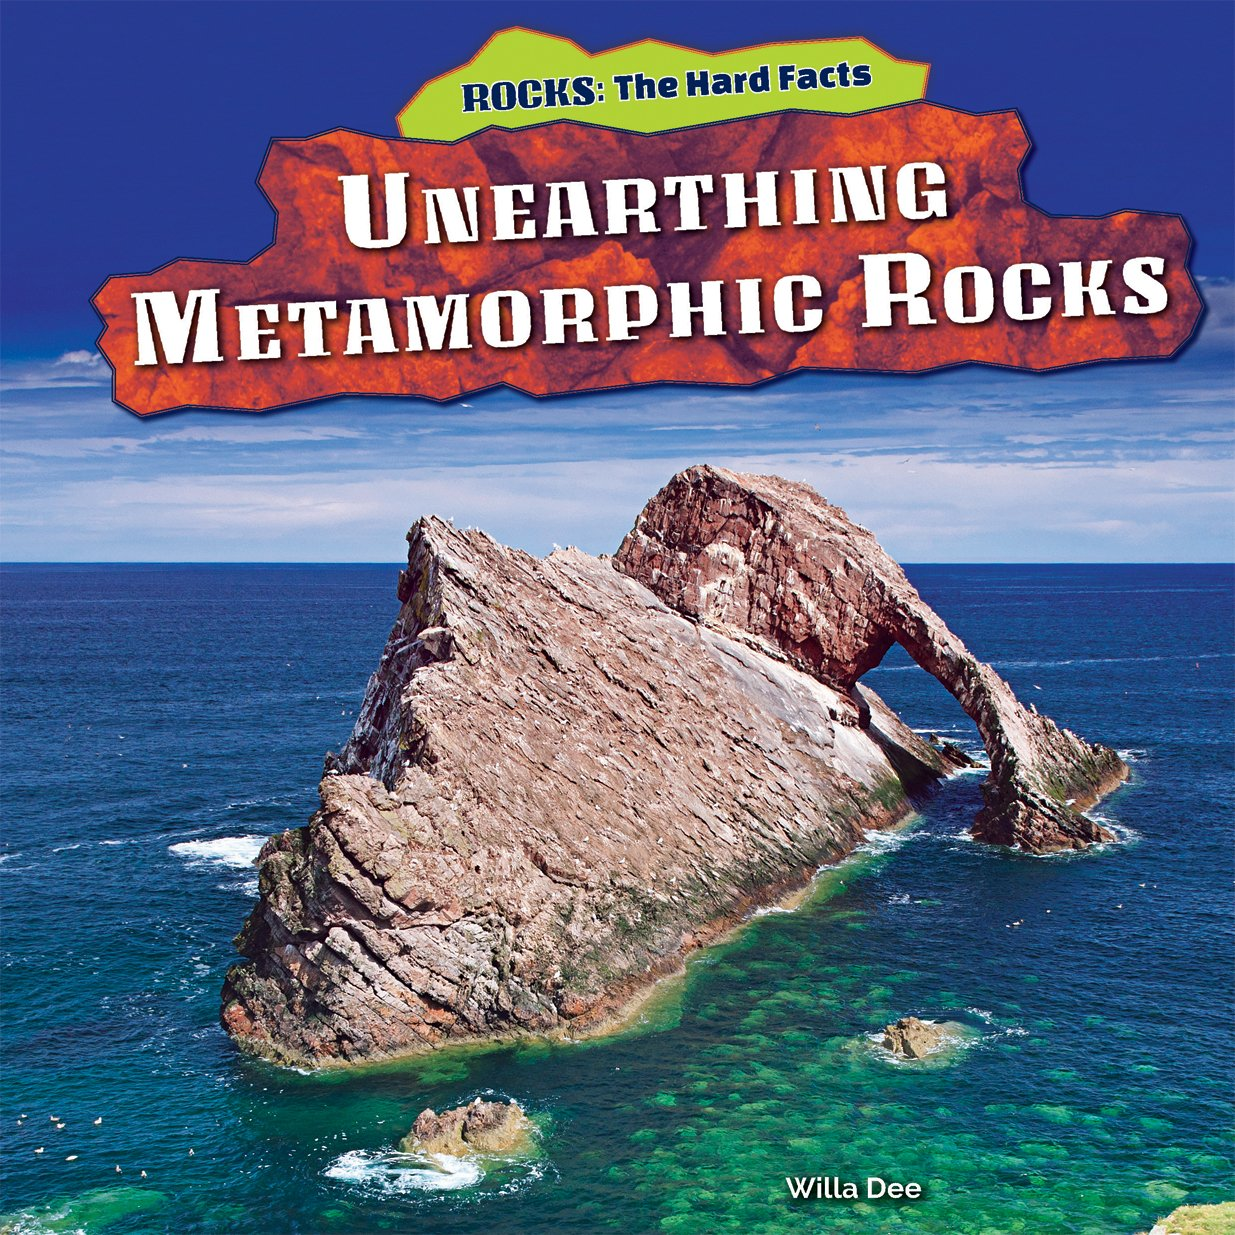 Unearthing Metamorphic Rocks (Rocks: The Hard Facts)